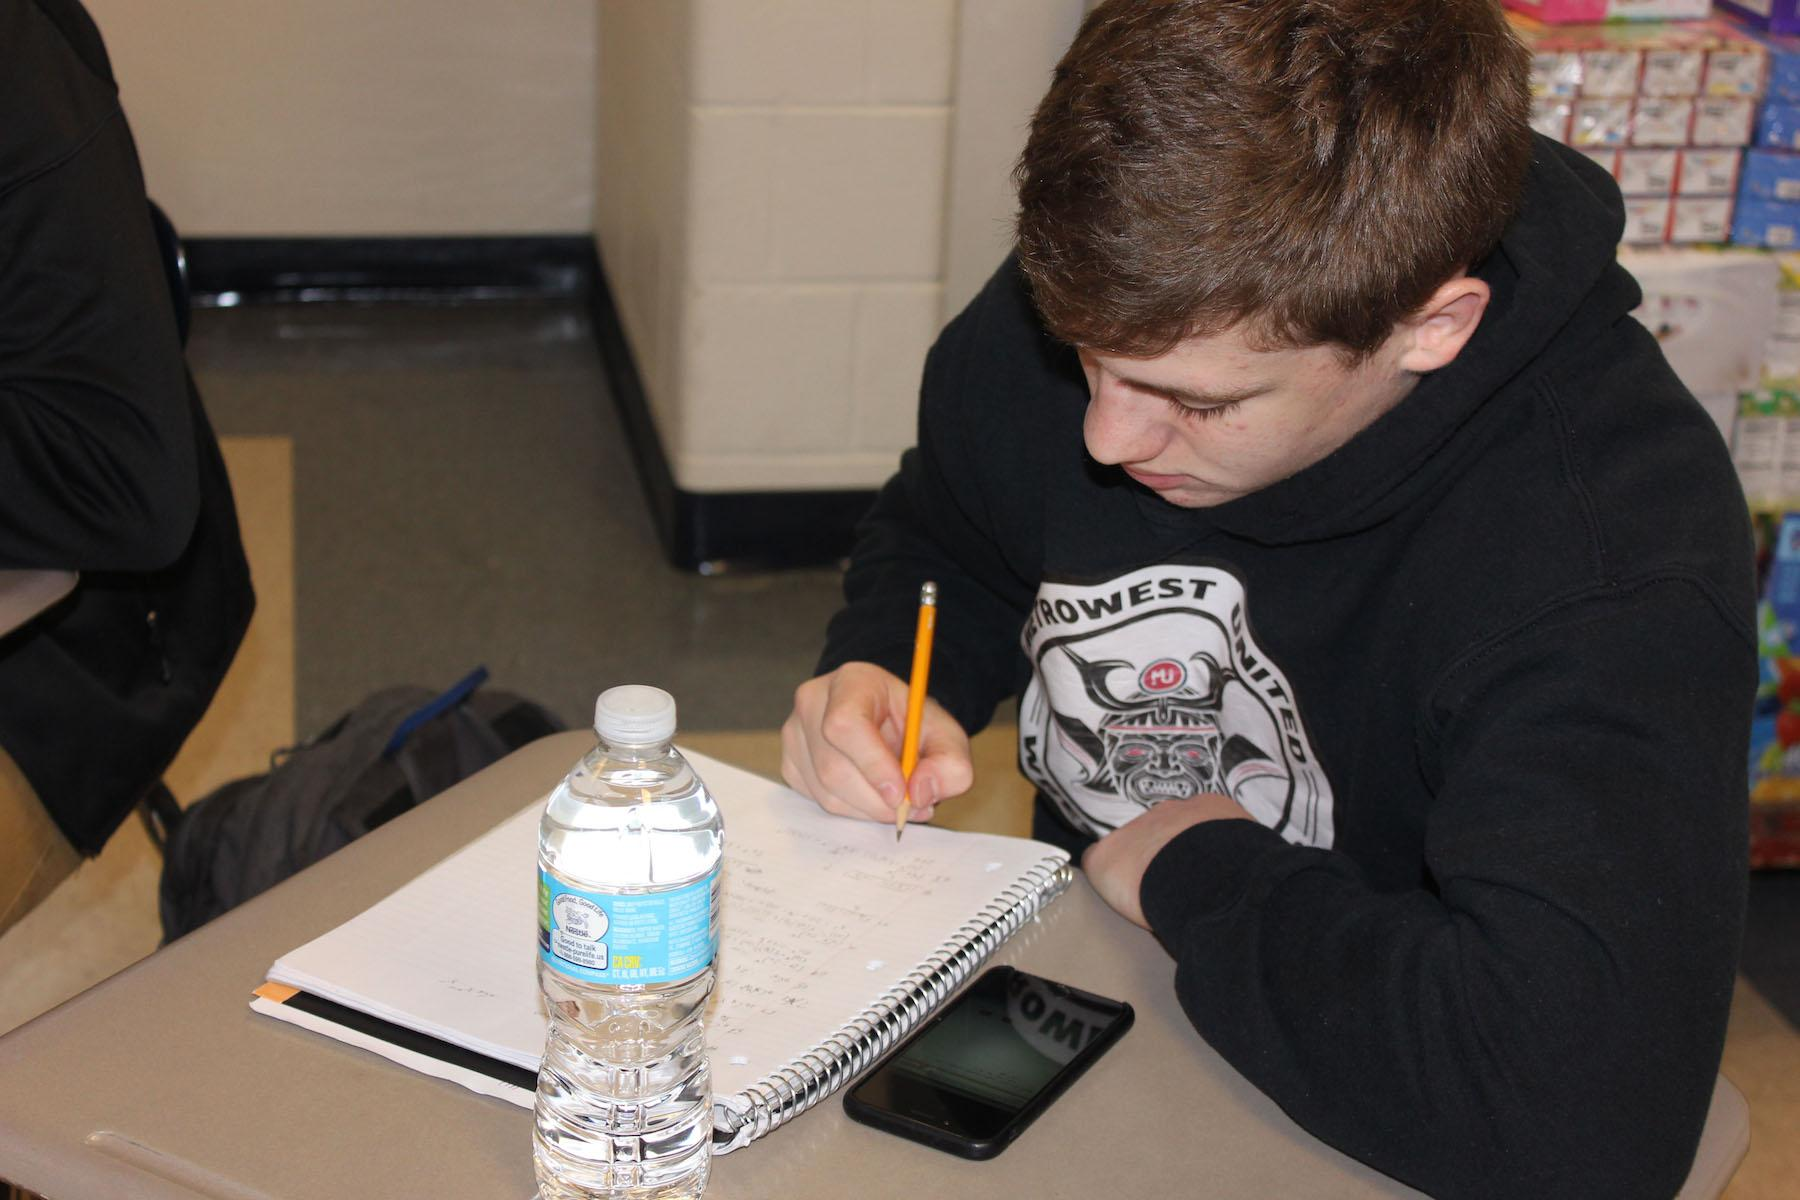 Students spend the ten minutes provided by homeroom and the associated passing time to study, interact socially, and complete homework assignments.